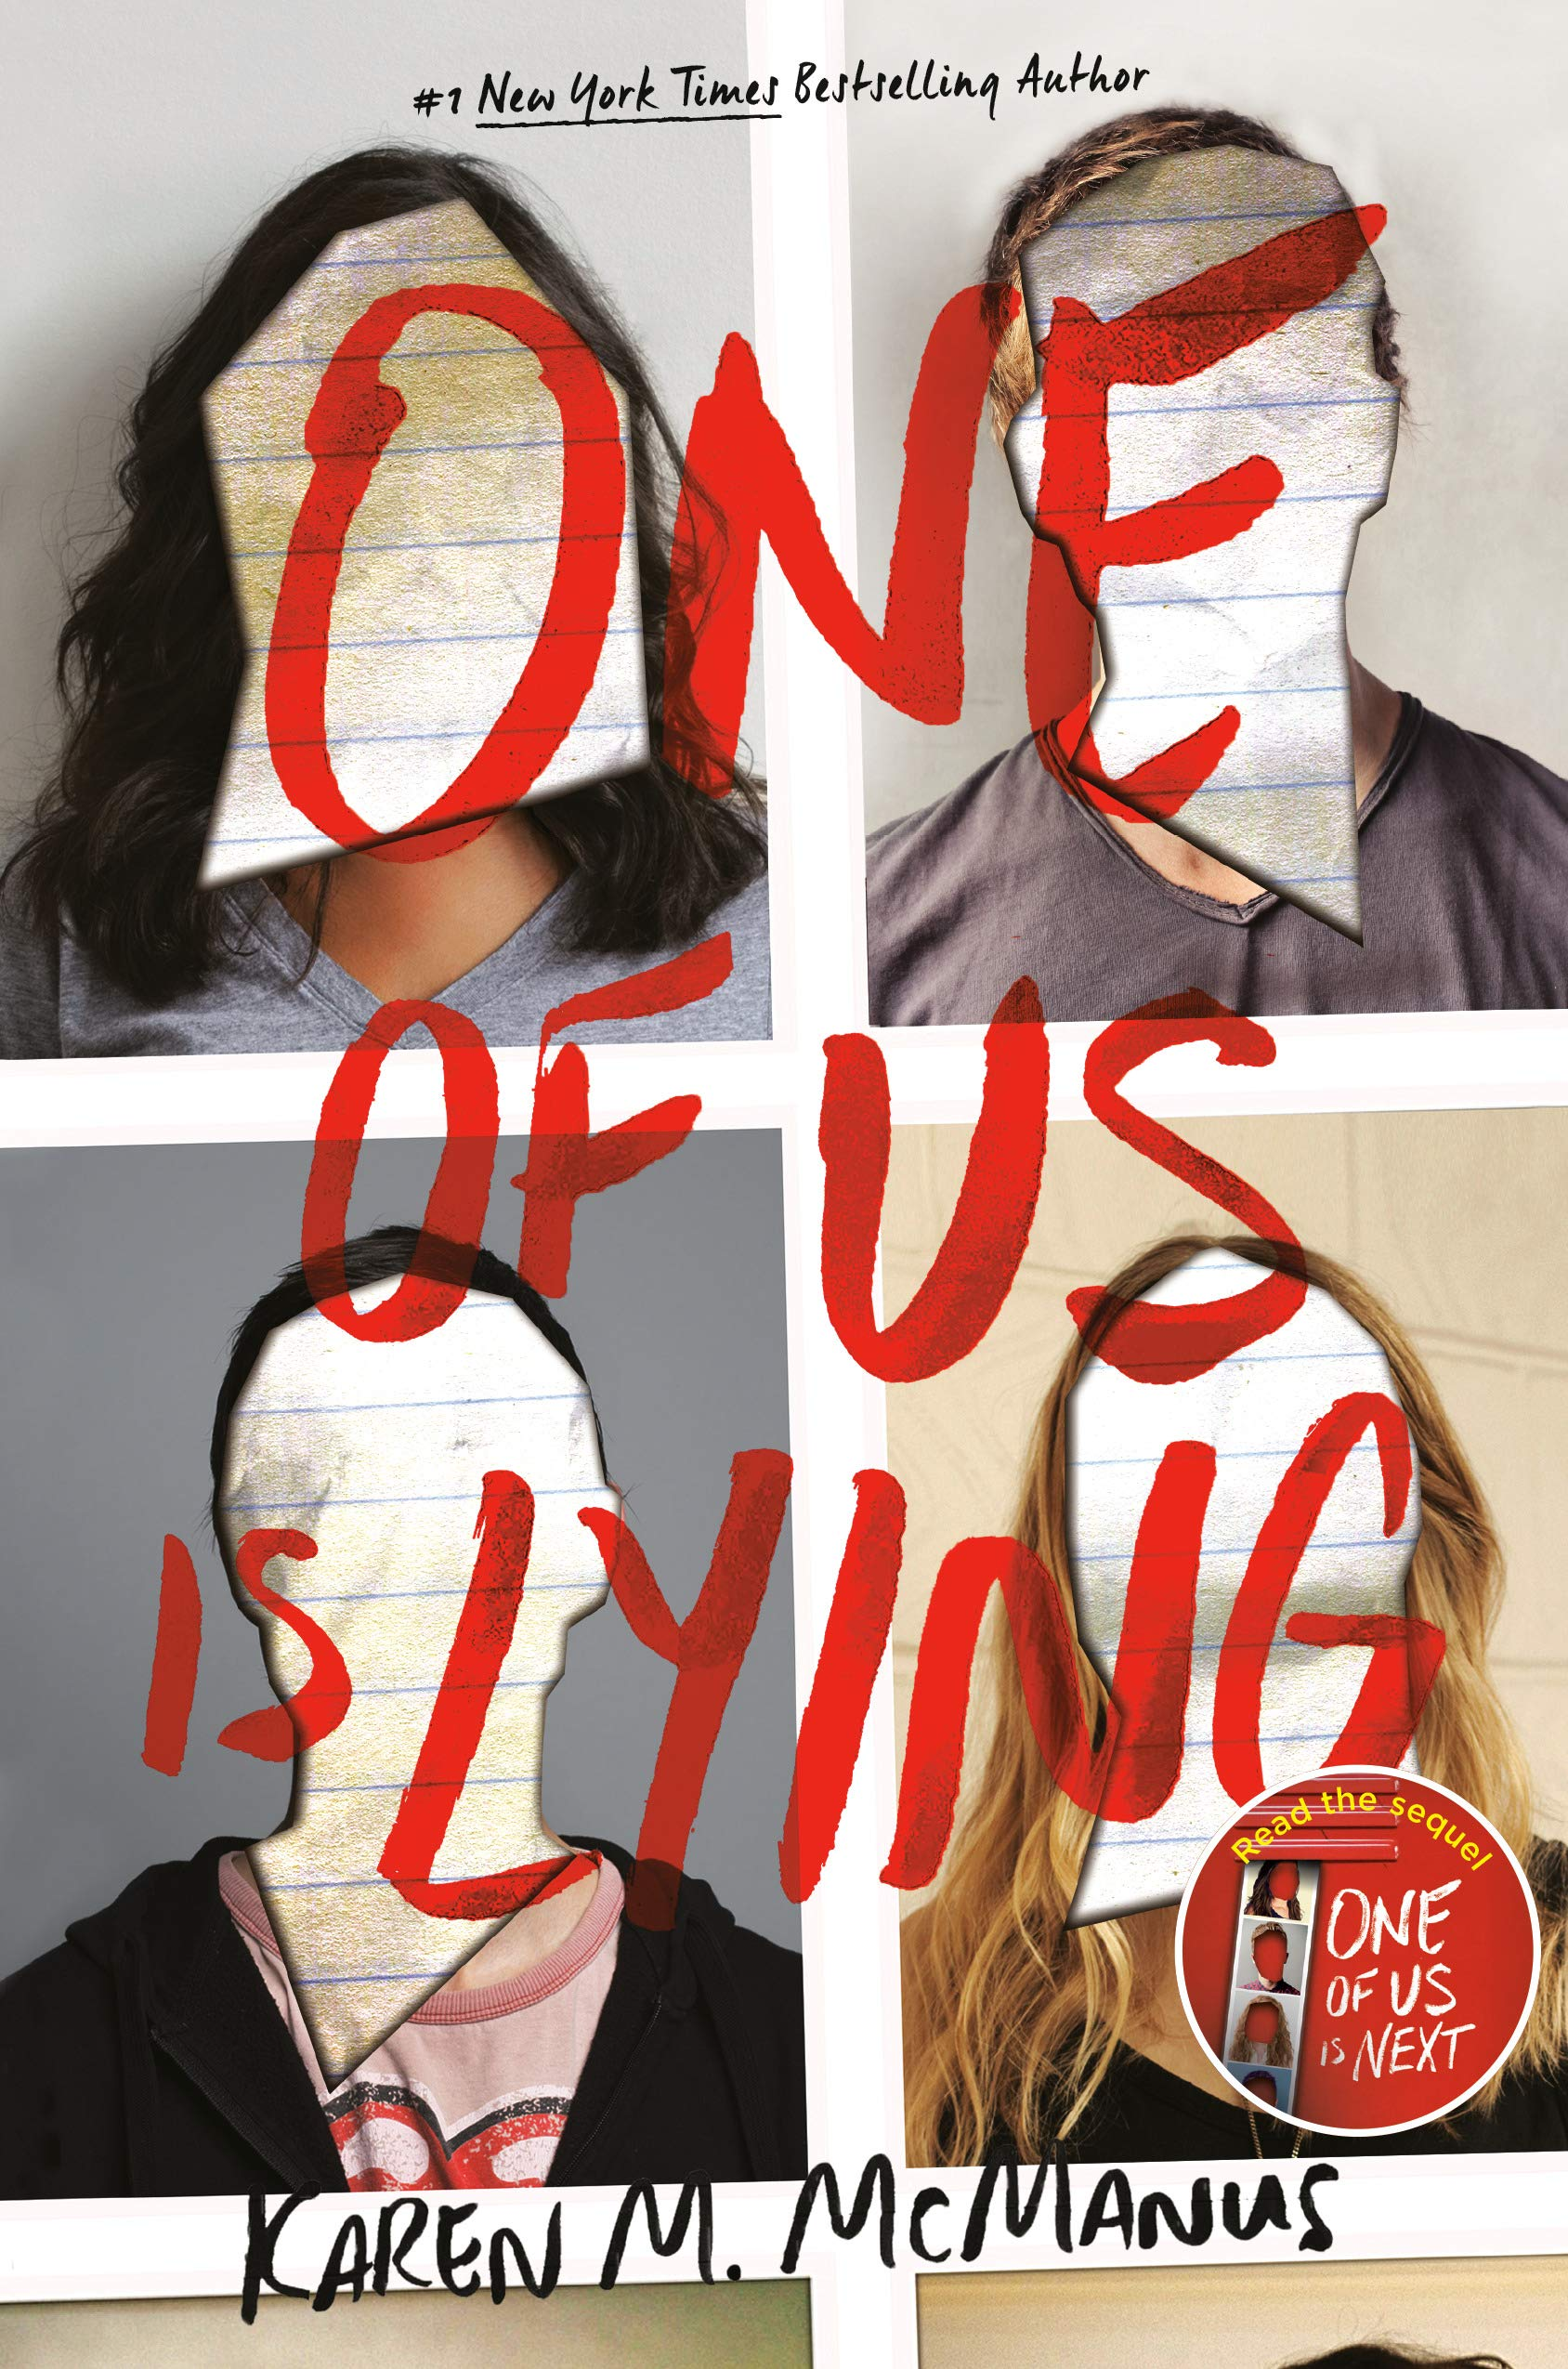 Amazon.com: One of Us Is Lying (9781524714680): McManus, Karen M ...